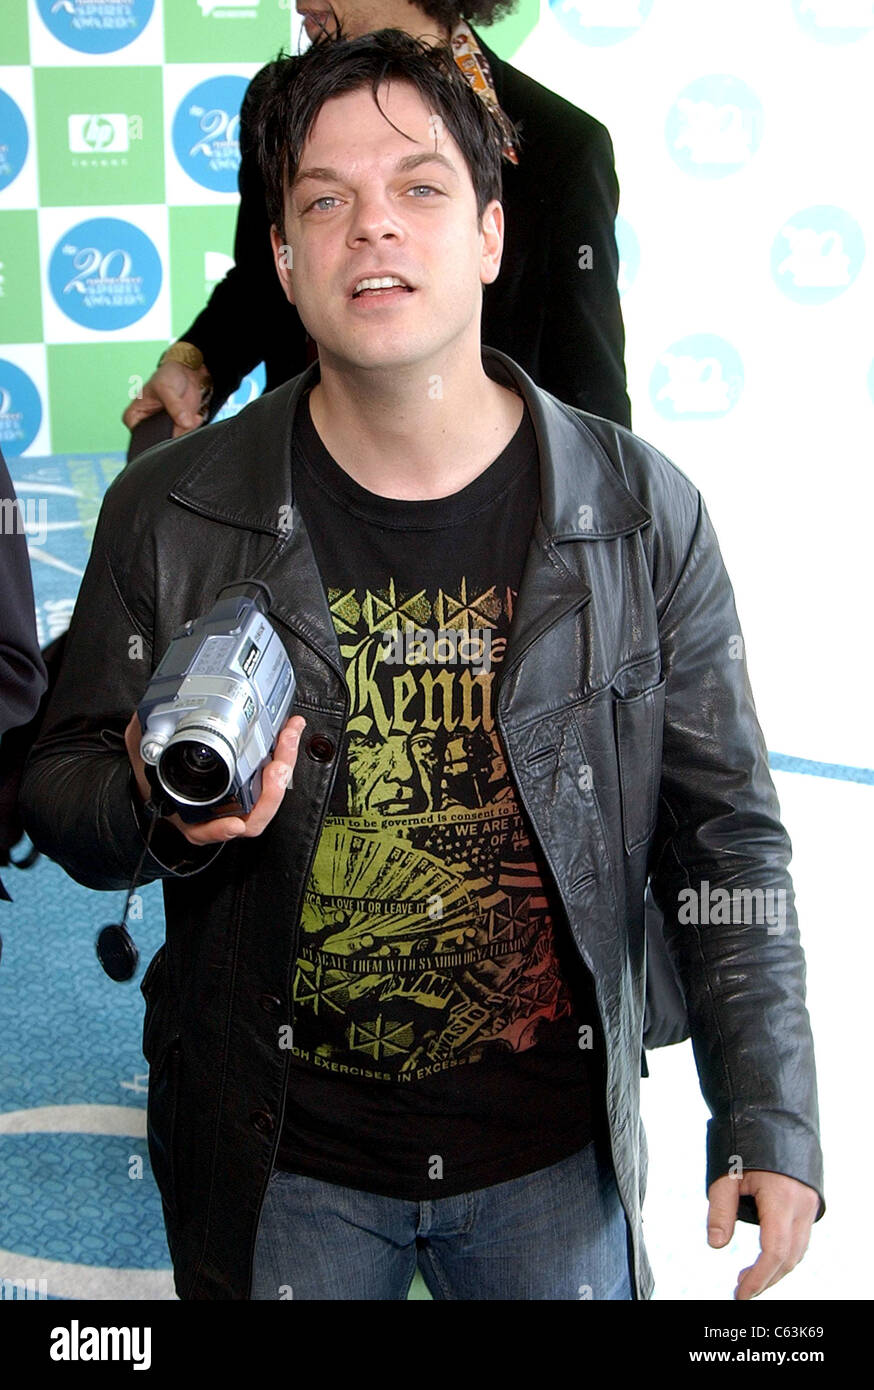 Jonathan Caouette at arrivals for 20th IFP Independent Spirit Awards, Los Angeles, CA, Saturday, February 26, 2005. - Stock Image